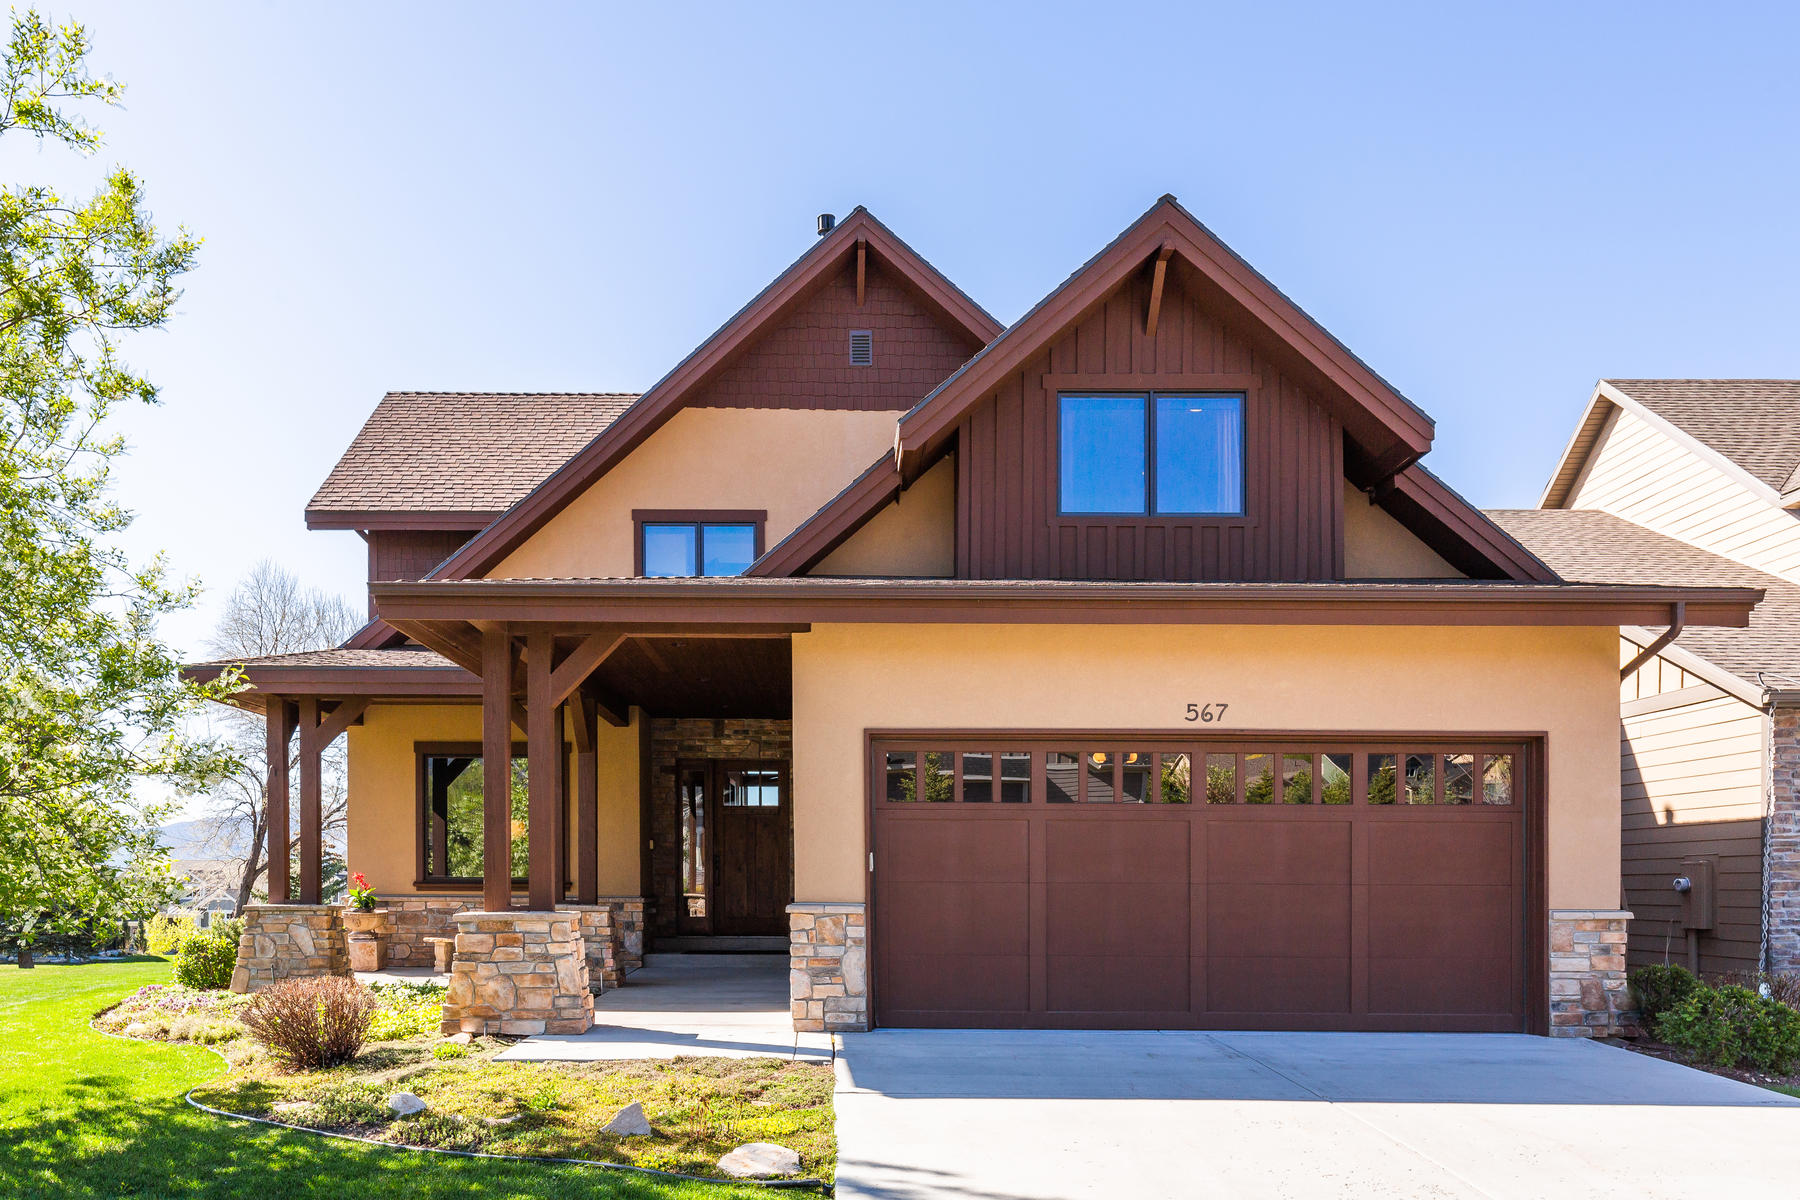 Single Family Homes for Sale at Quality Custom Built Home on Golf Course! 567 Bayhill Drive Midway, Utah 84049 United States